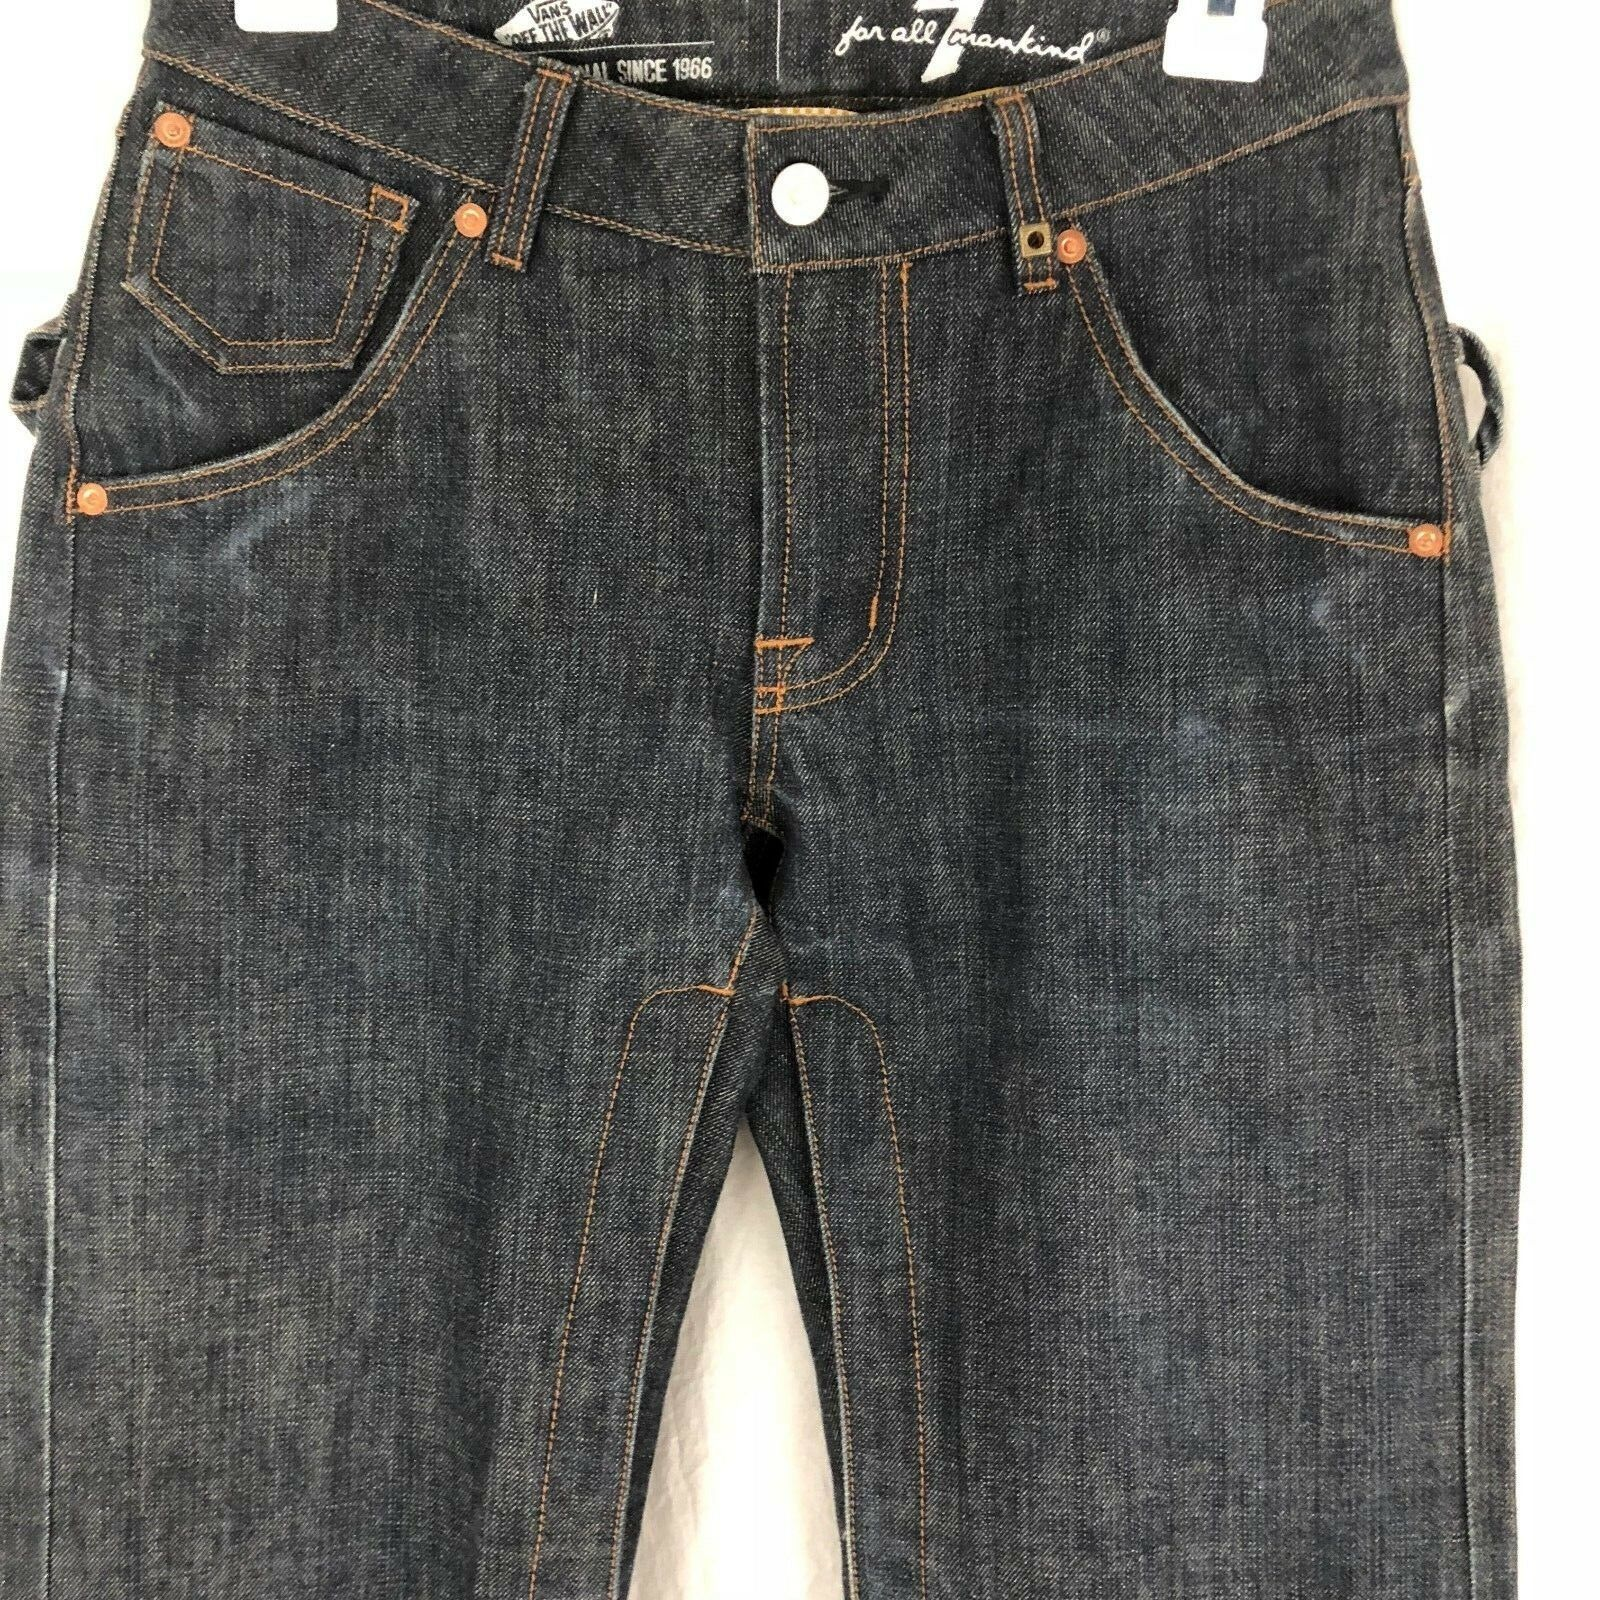 Vans X 7 For All Mankind Snowboard Pants Denim Indigo Jeans Flare Vintage 28/30